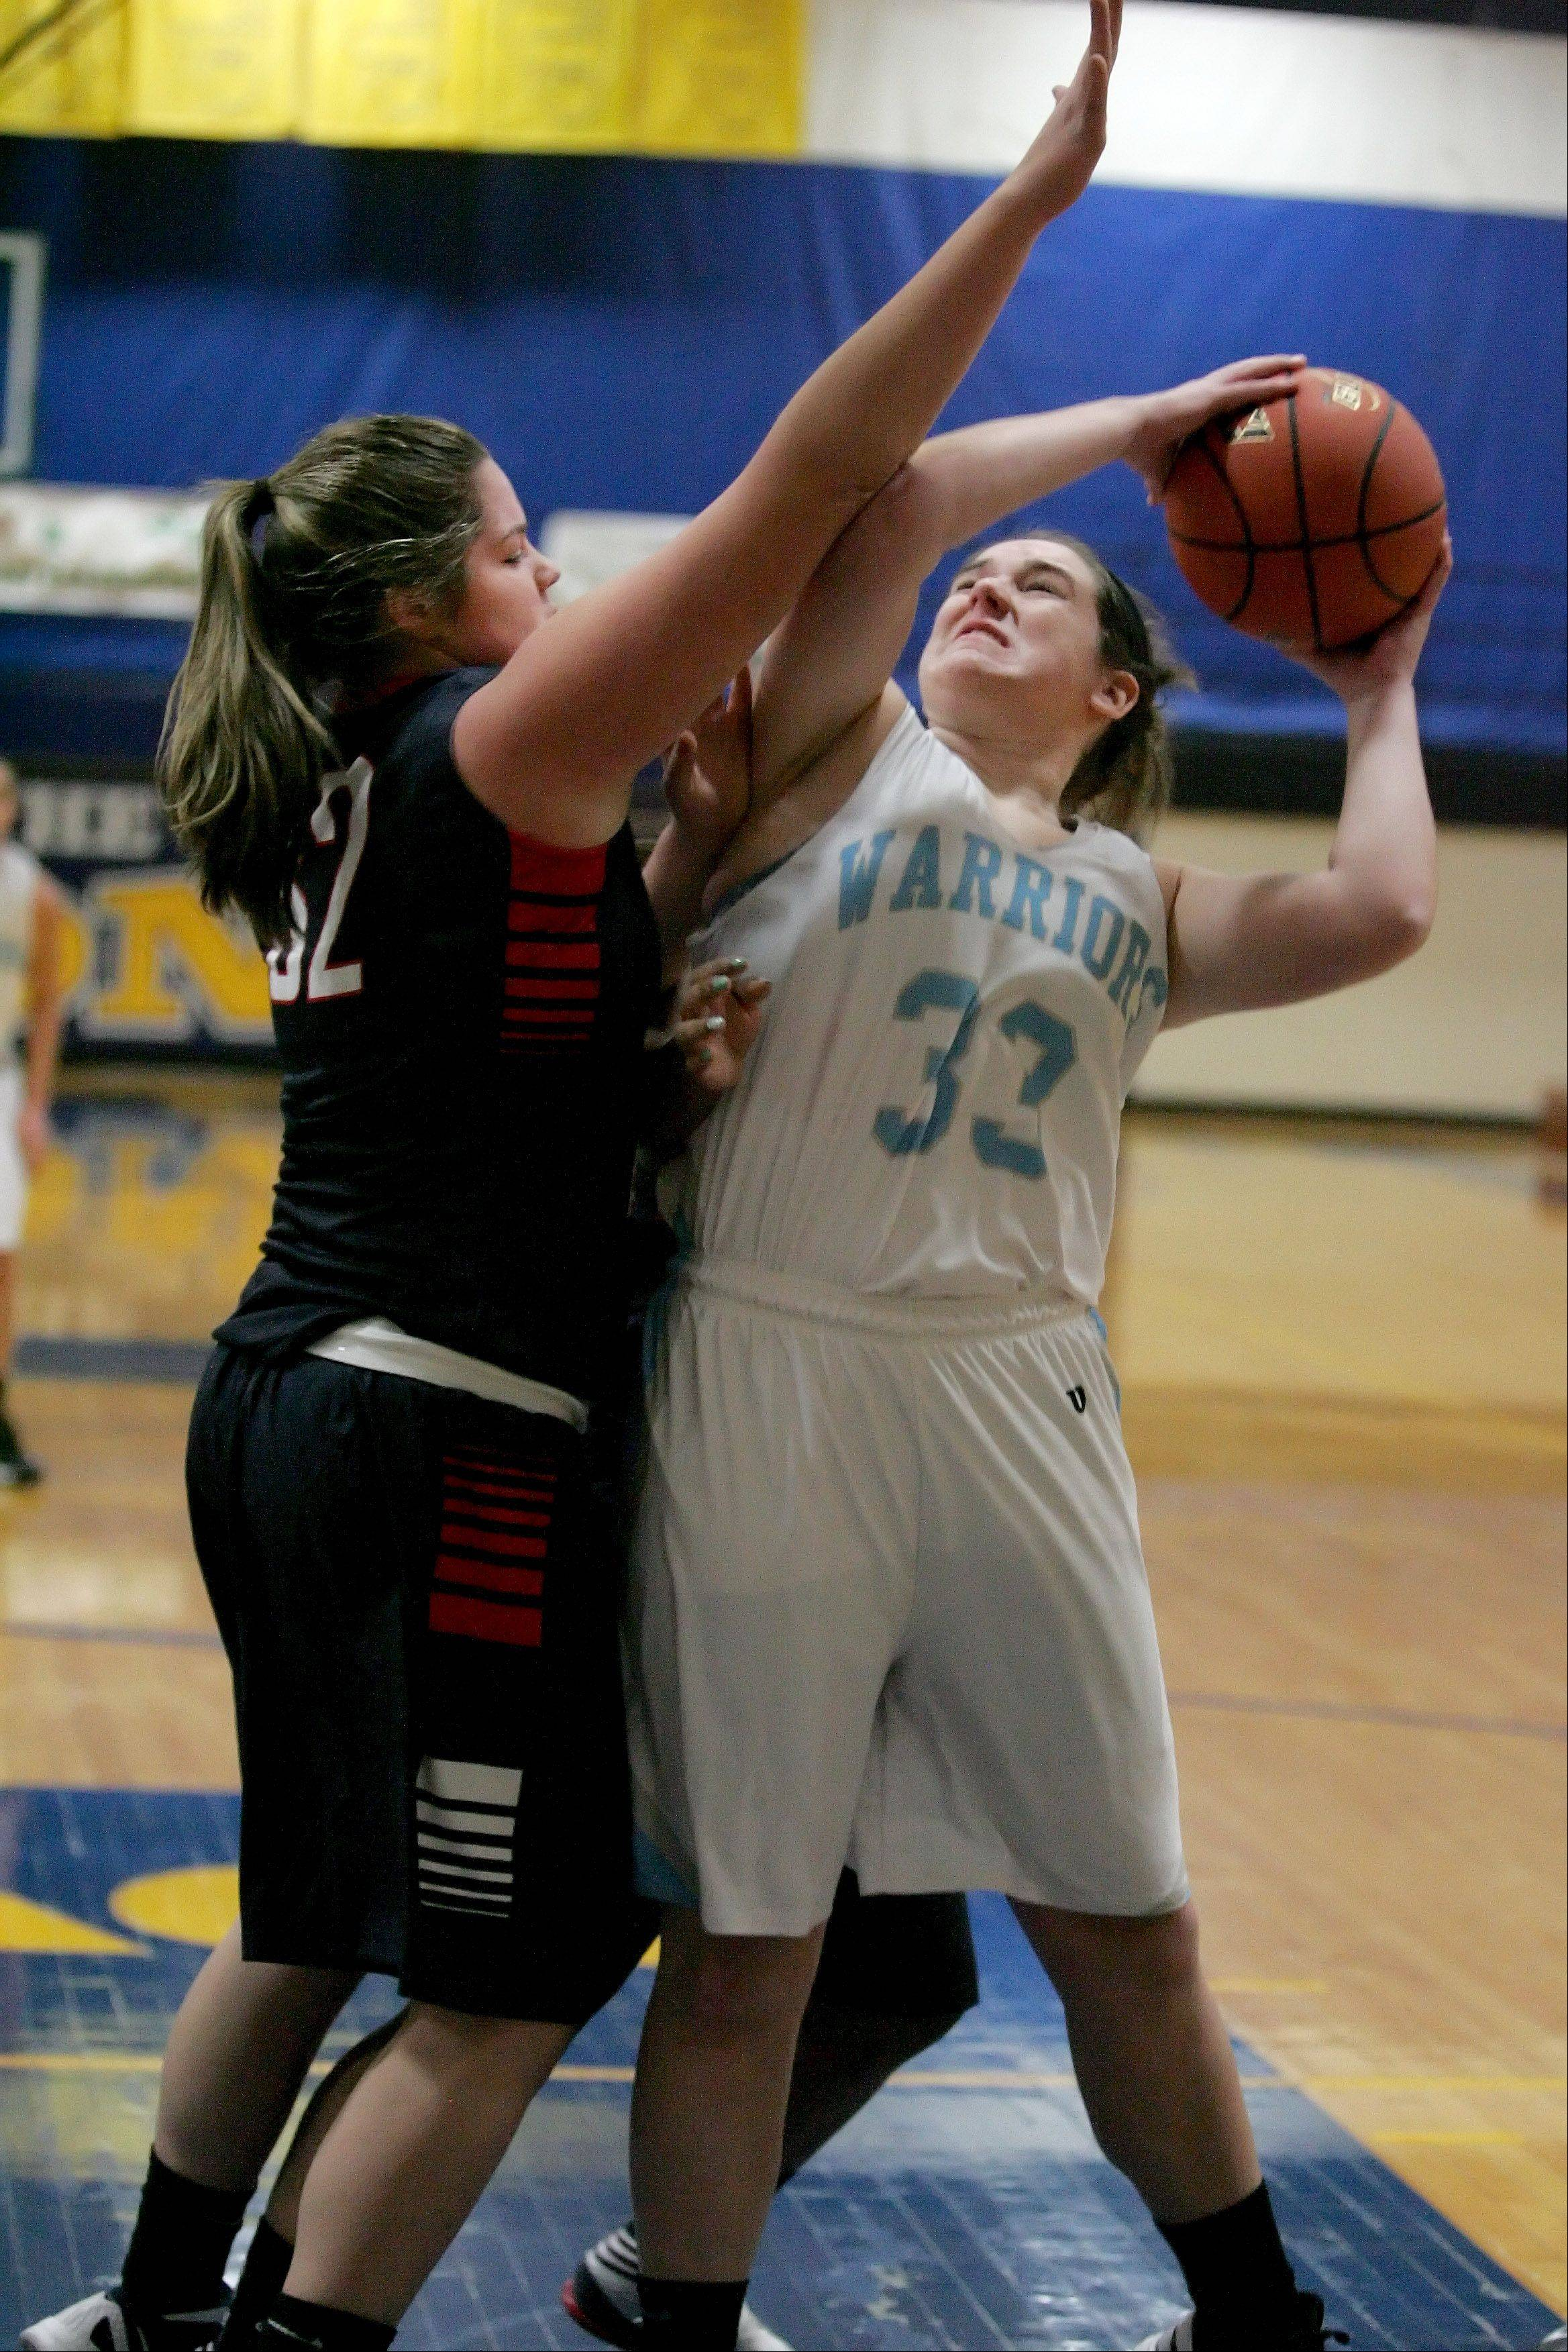 Anna Lentsch of Willowbrook, right, looks for room to shoot a basket as Molly Jordan, left, of West Aurora defends in girls basketball action at the 2012 Bill Neibch Holiday Tournament at Wheaton North High School on Wednesday.